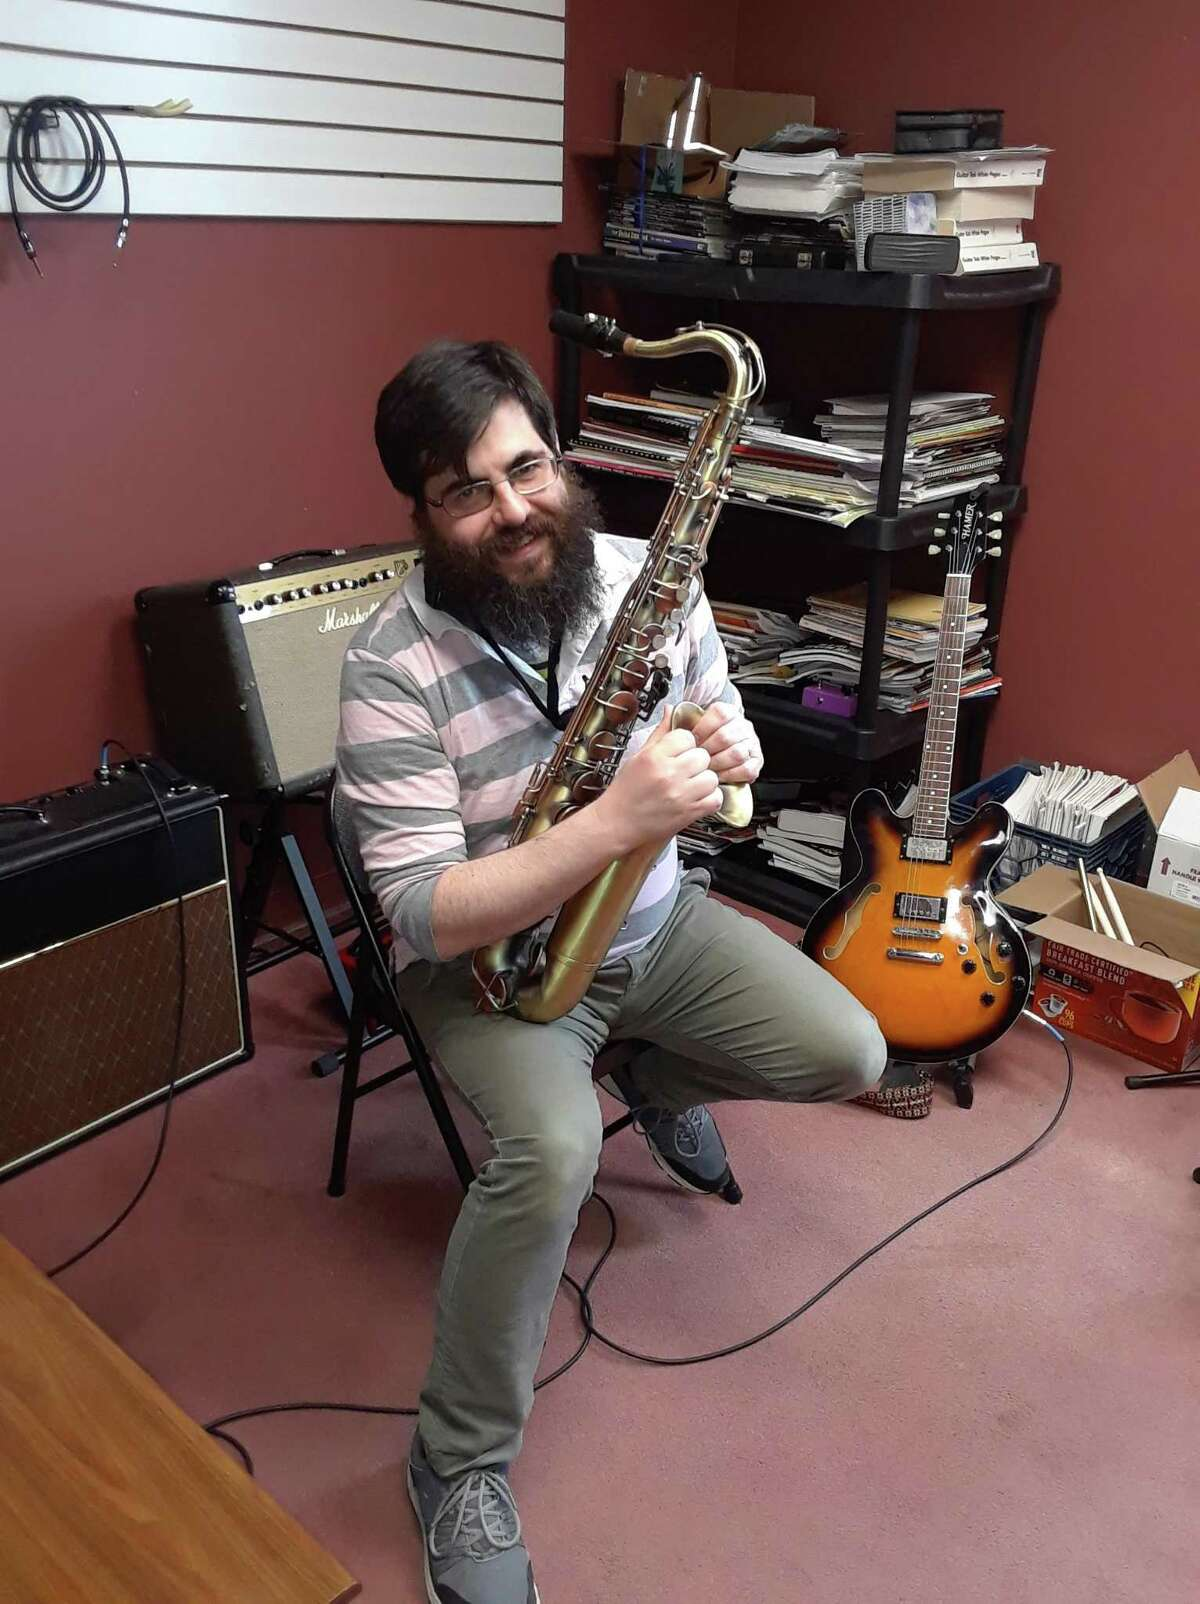 Musician John Ambrose teaches students on a variety of woodwind and reed instruments as well as guitar and brass. His first love is the saxophone.